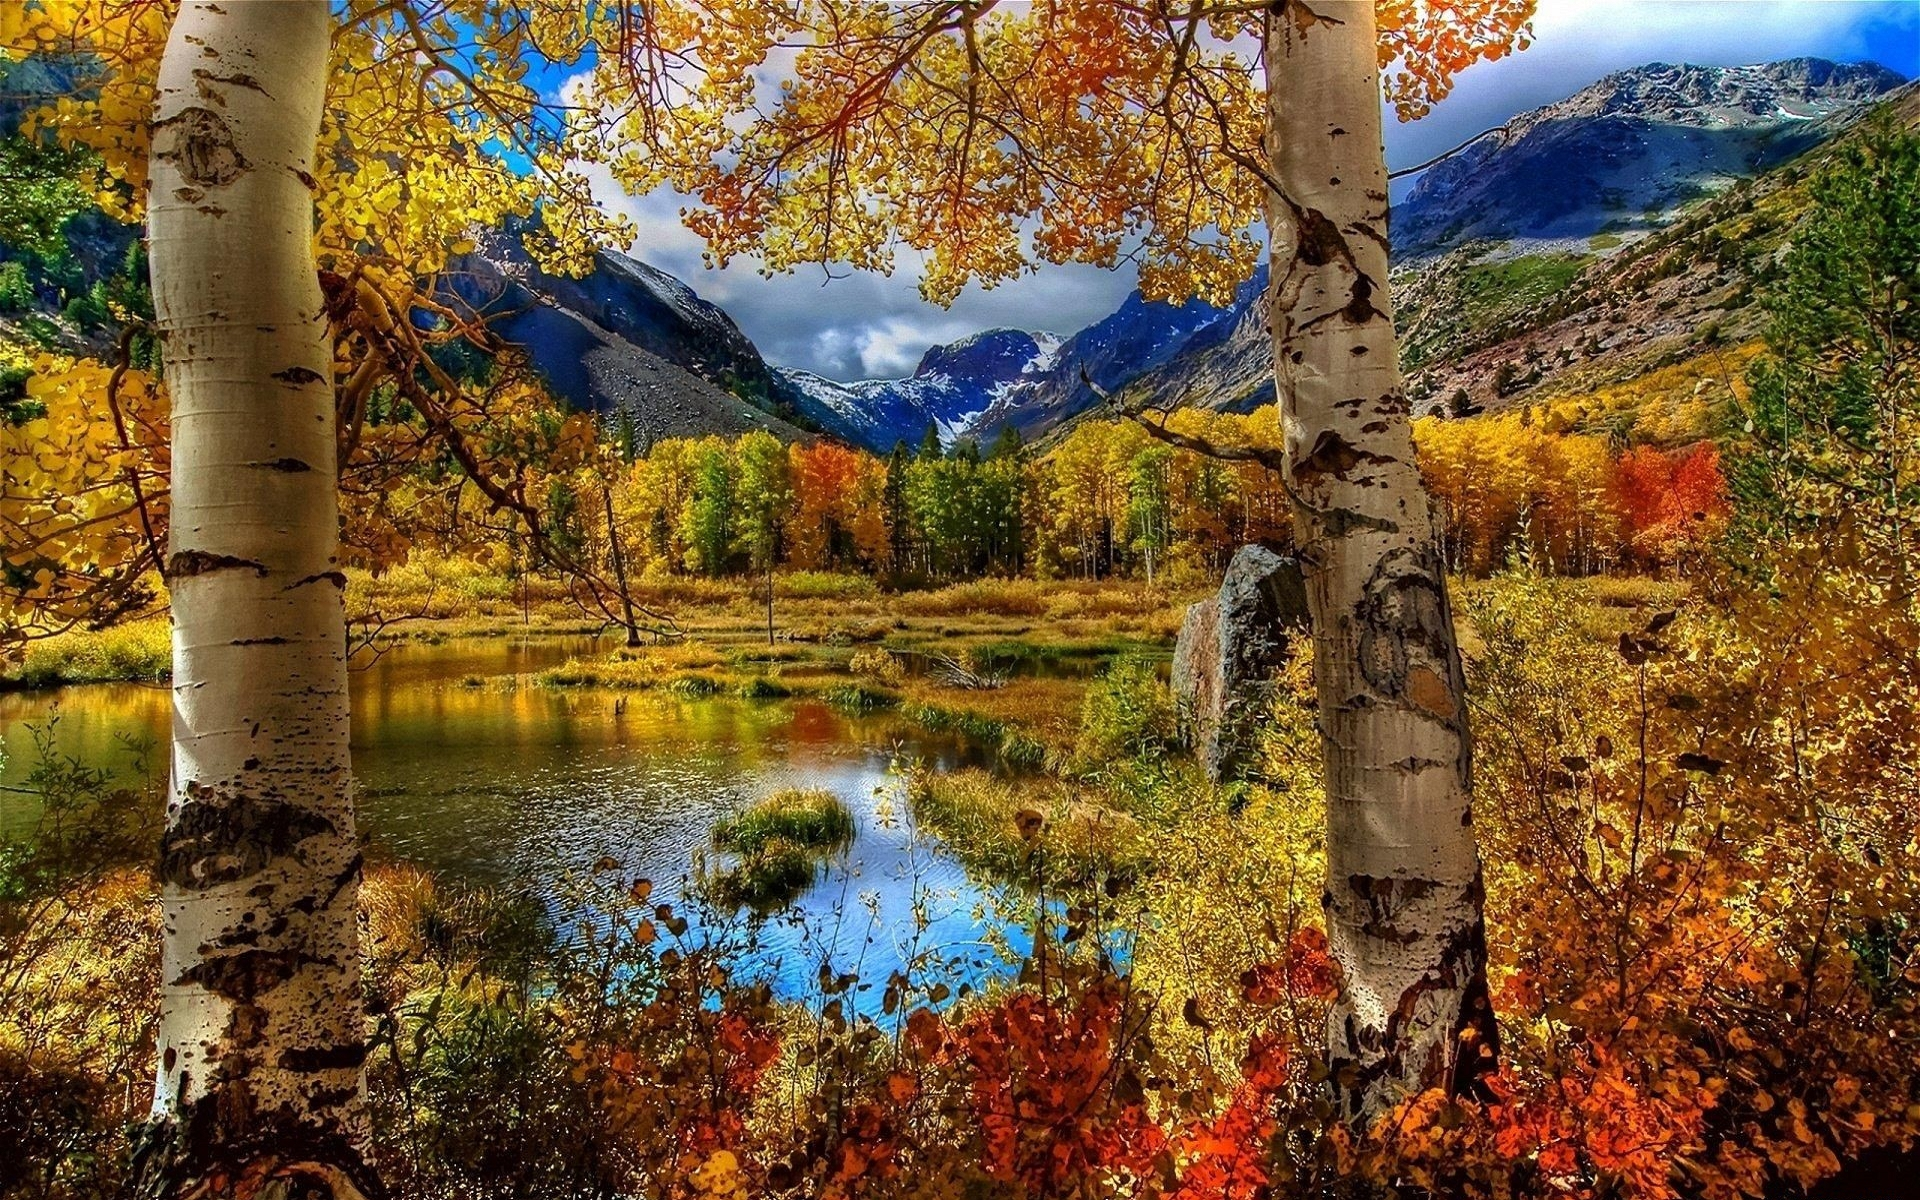 32657 download wallpaper Landscape, Rivers, Mountains, Autumn screensavers and pictures for free